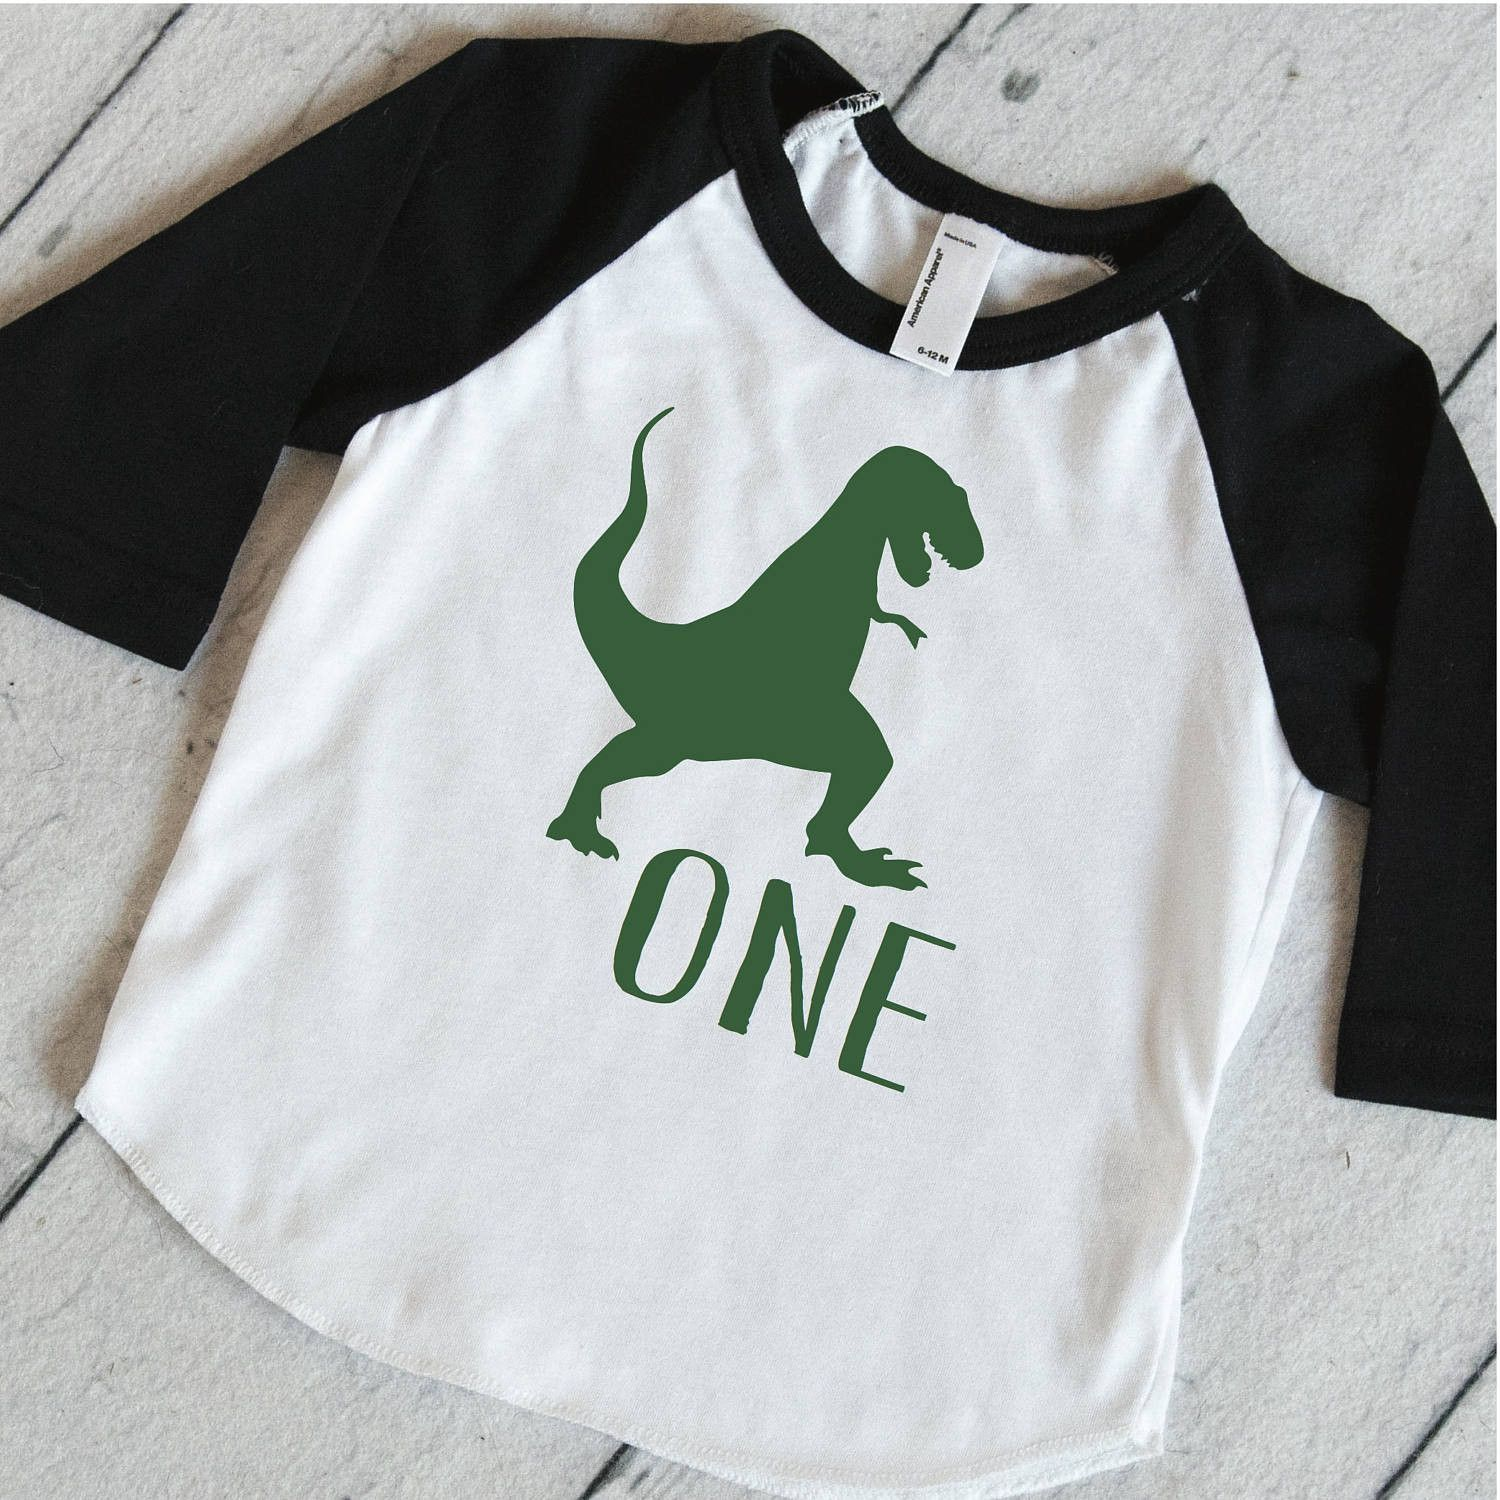 2d9f1ad2a Kids Birthday Outfit, Dinosaur Shirt, T-Rex Birthday Shirt, Dinosaur  Birthday Party Shirt, One Year Old Dino Shirt 316